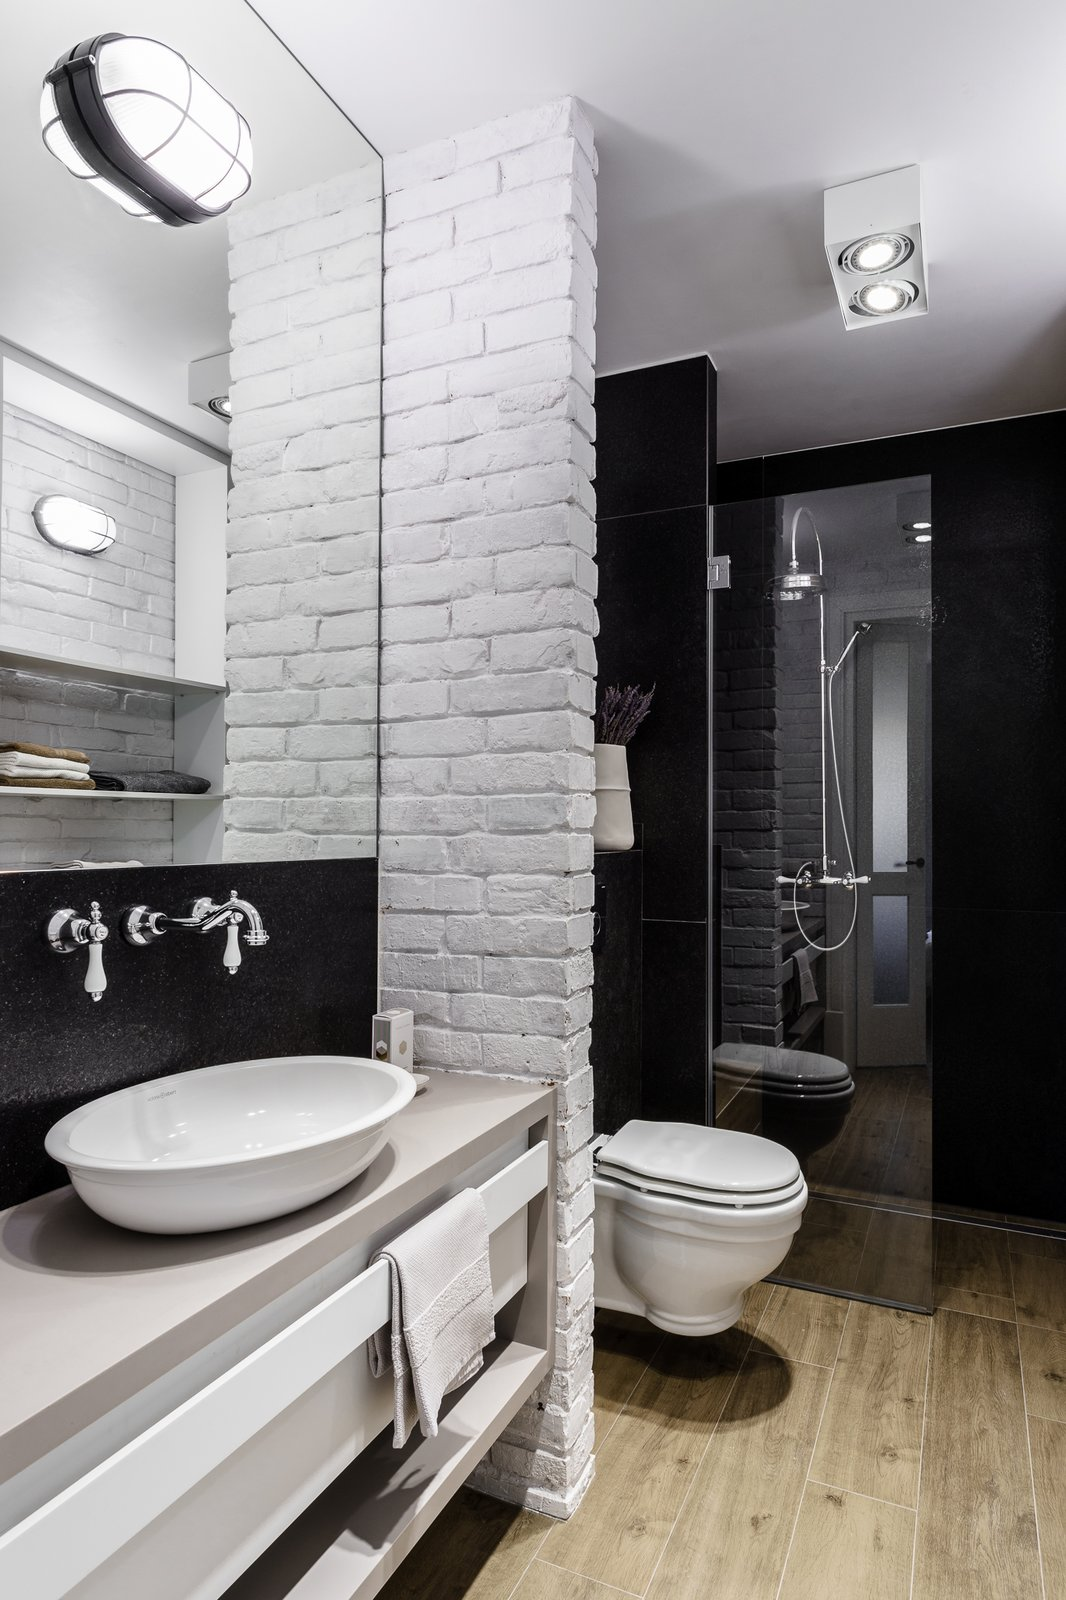 Tagged: Bath Room, Engineered Quartz Counter, Light Hardwood Floor, Vessel Sink, Corner Shower, Ceiling Lighting, Wall Lighting, Enclosed Shower, and One Piece Toilet.  Loft in Poland by Lucyna Kołodziejska | INTERIORS FACTORY